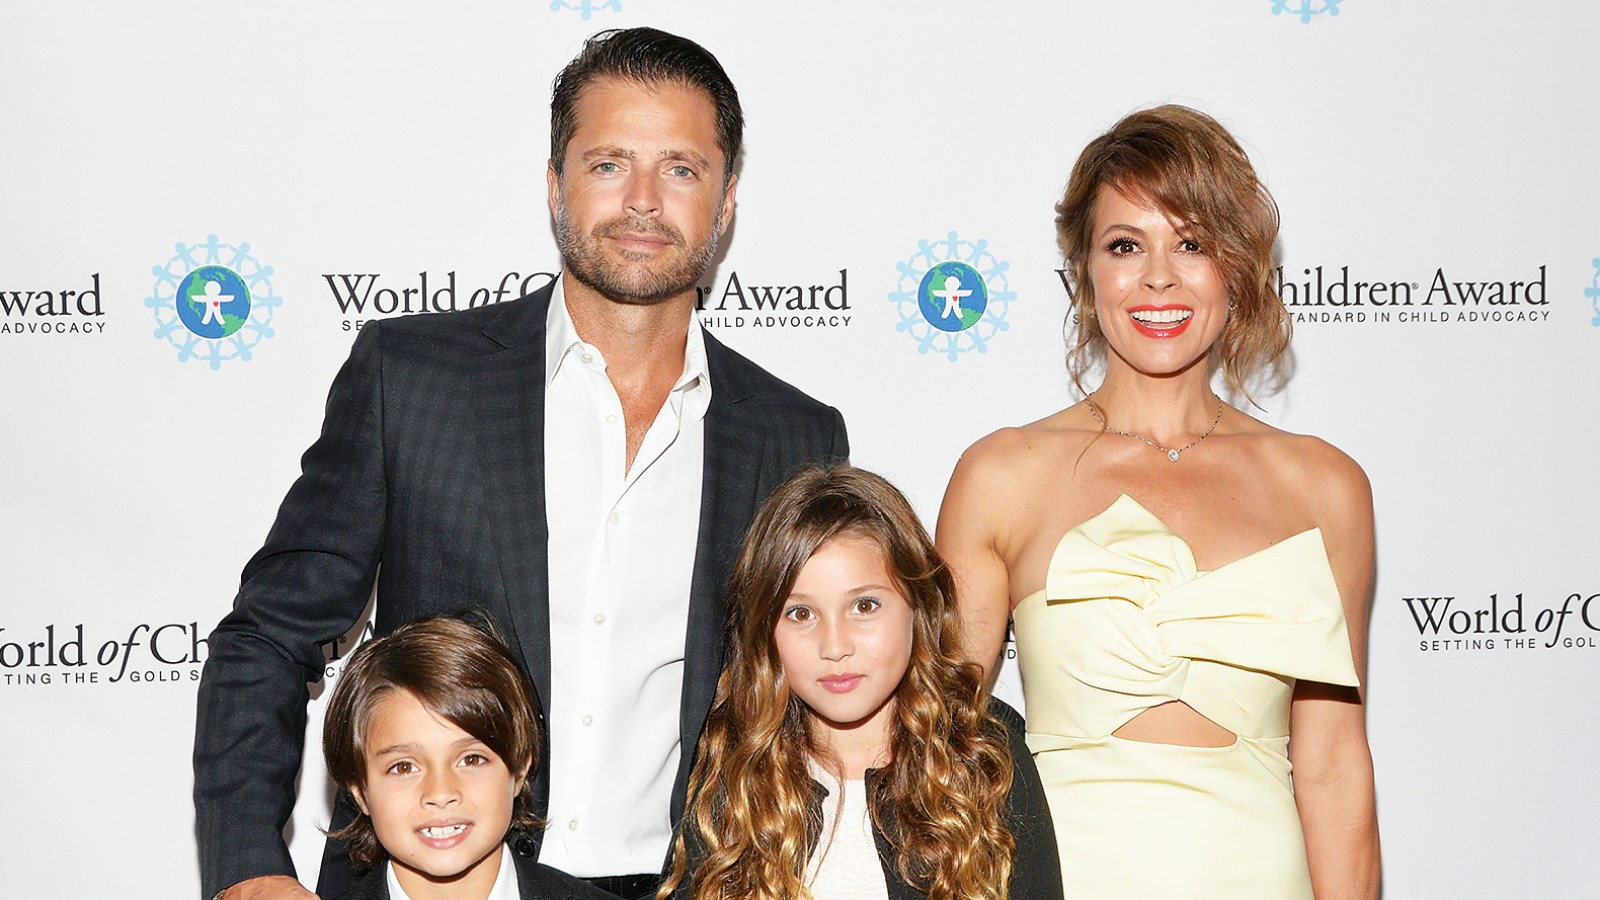 David charvet hairstyles for 2017 celebrity hairstyles by - Brooke Burke Charvet Doesn T Want Her Children To Grow Up Naive Celebrity Moms